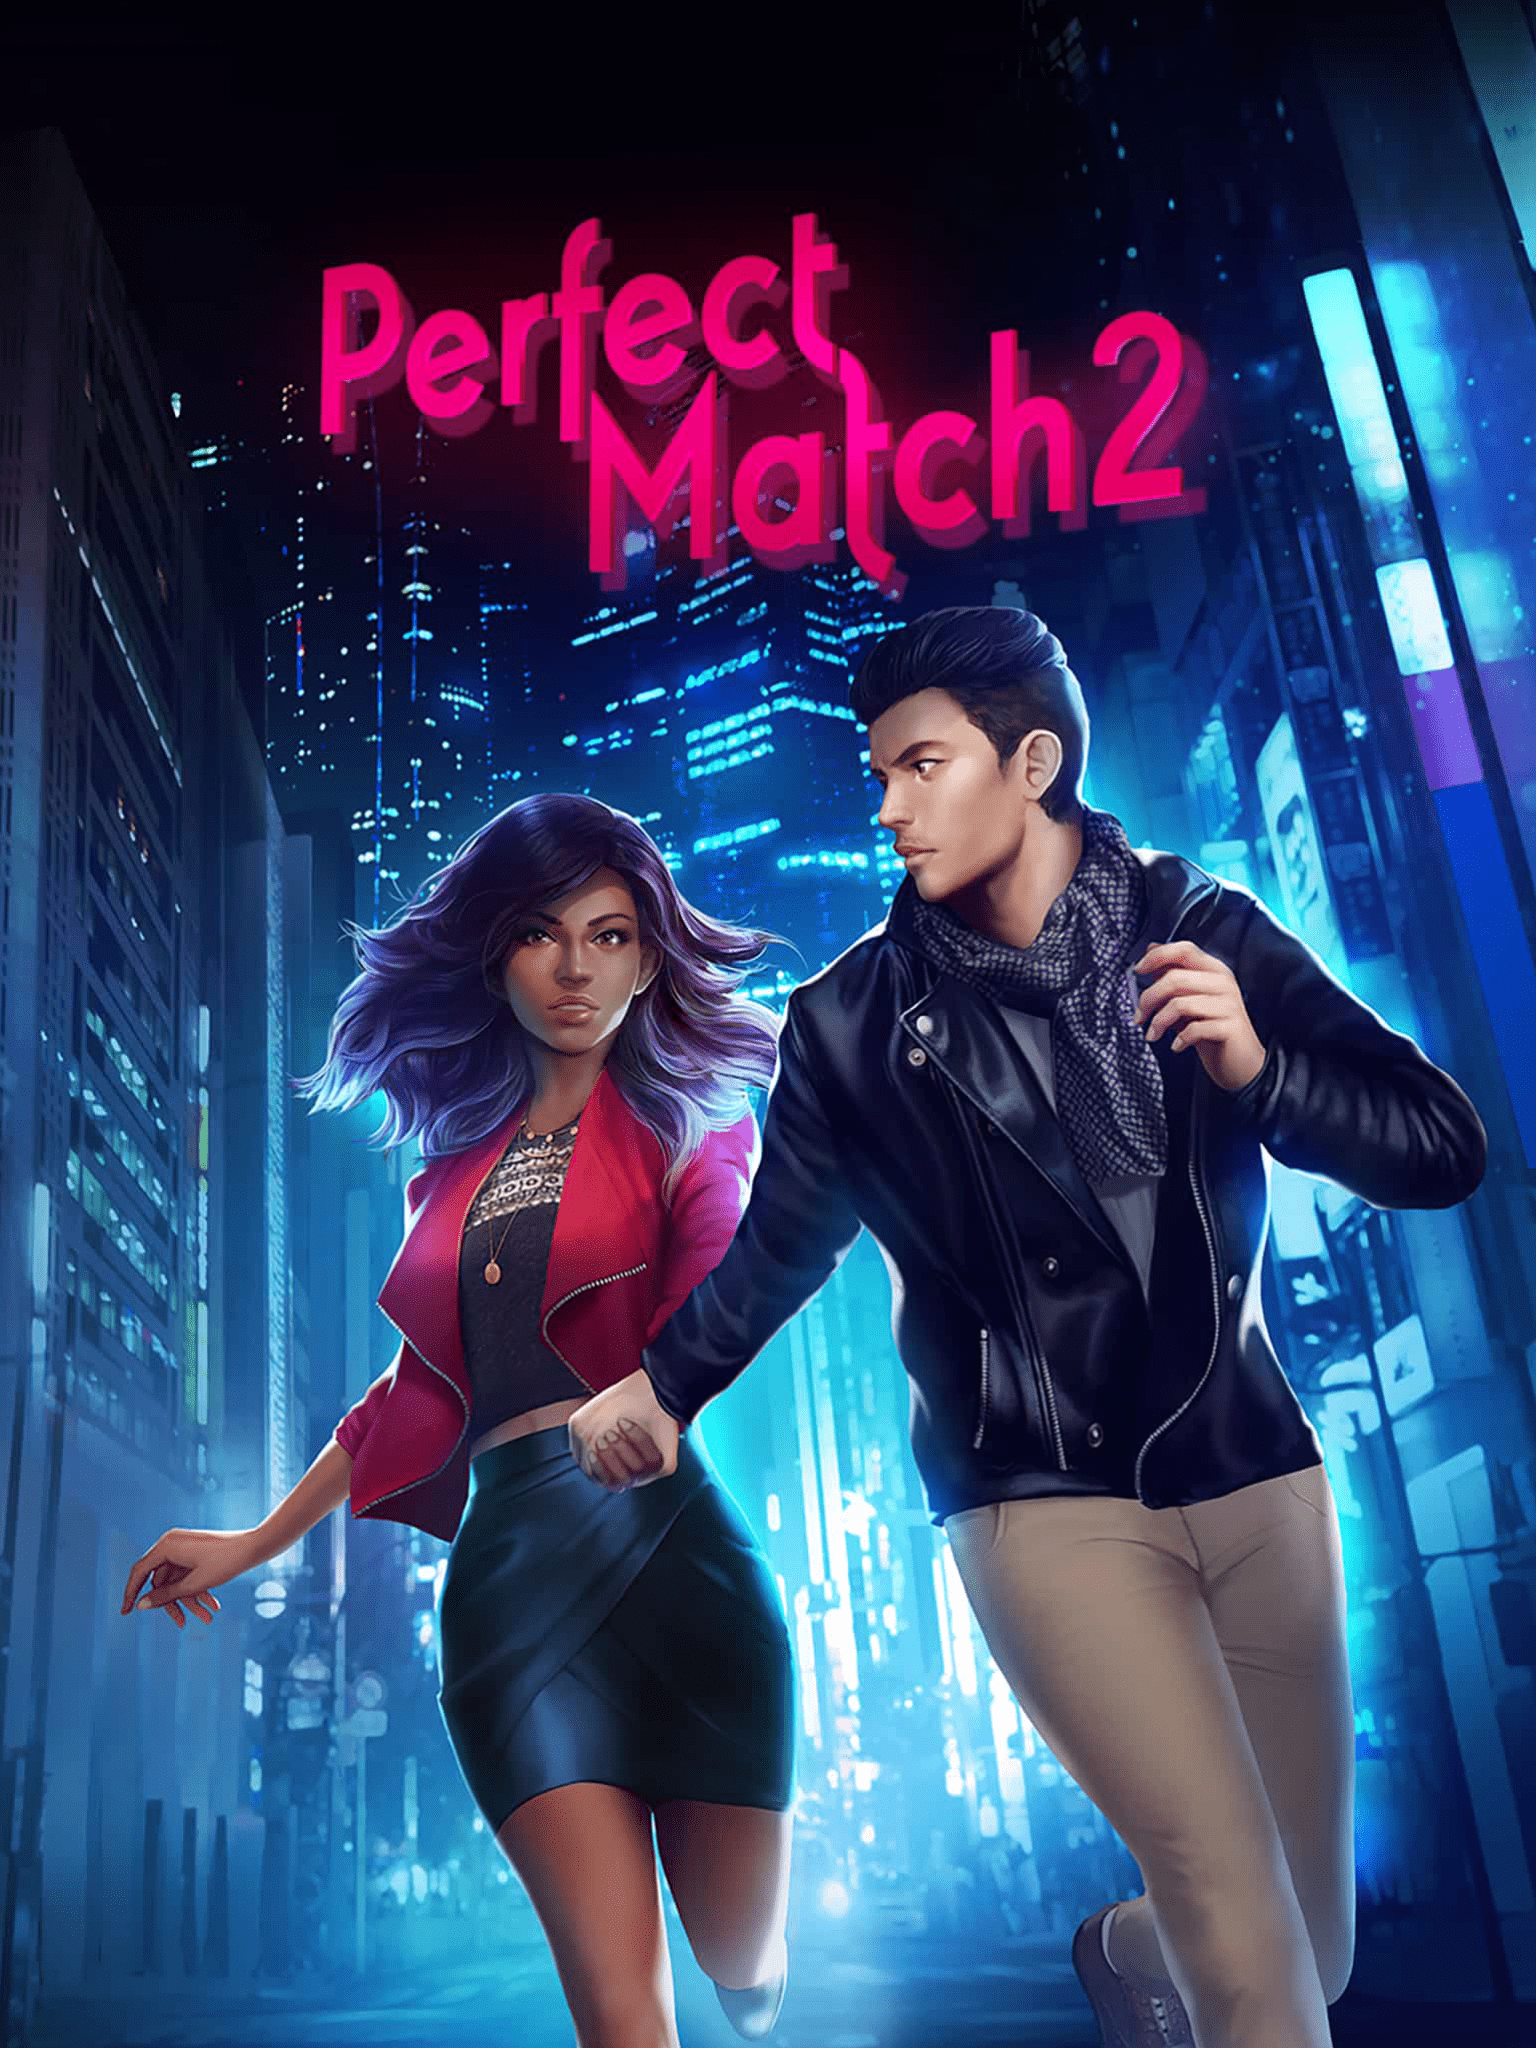 Perfect Match Book 2